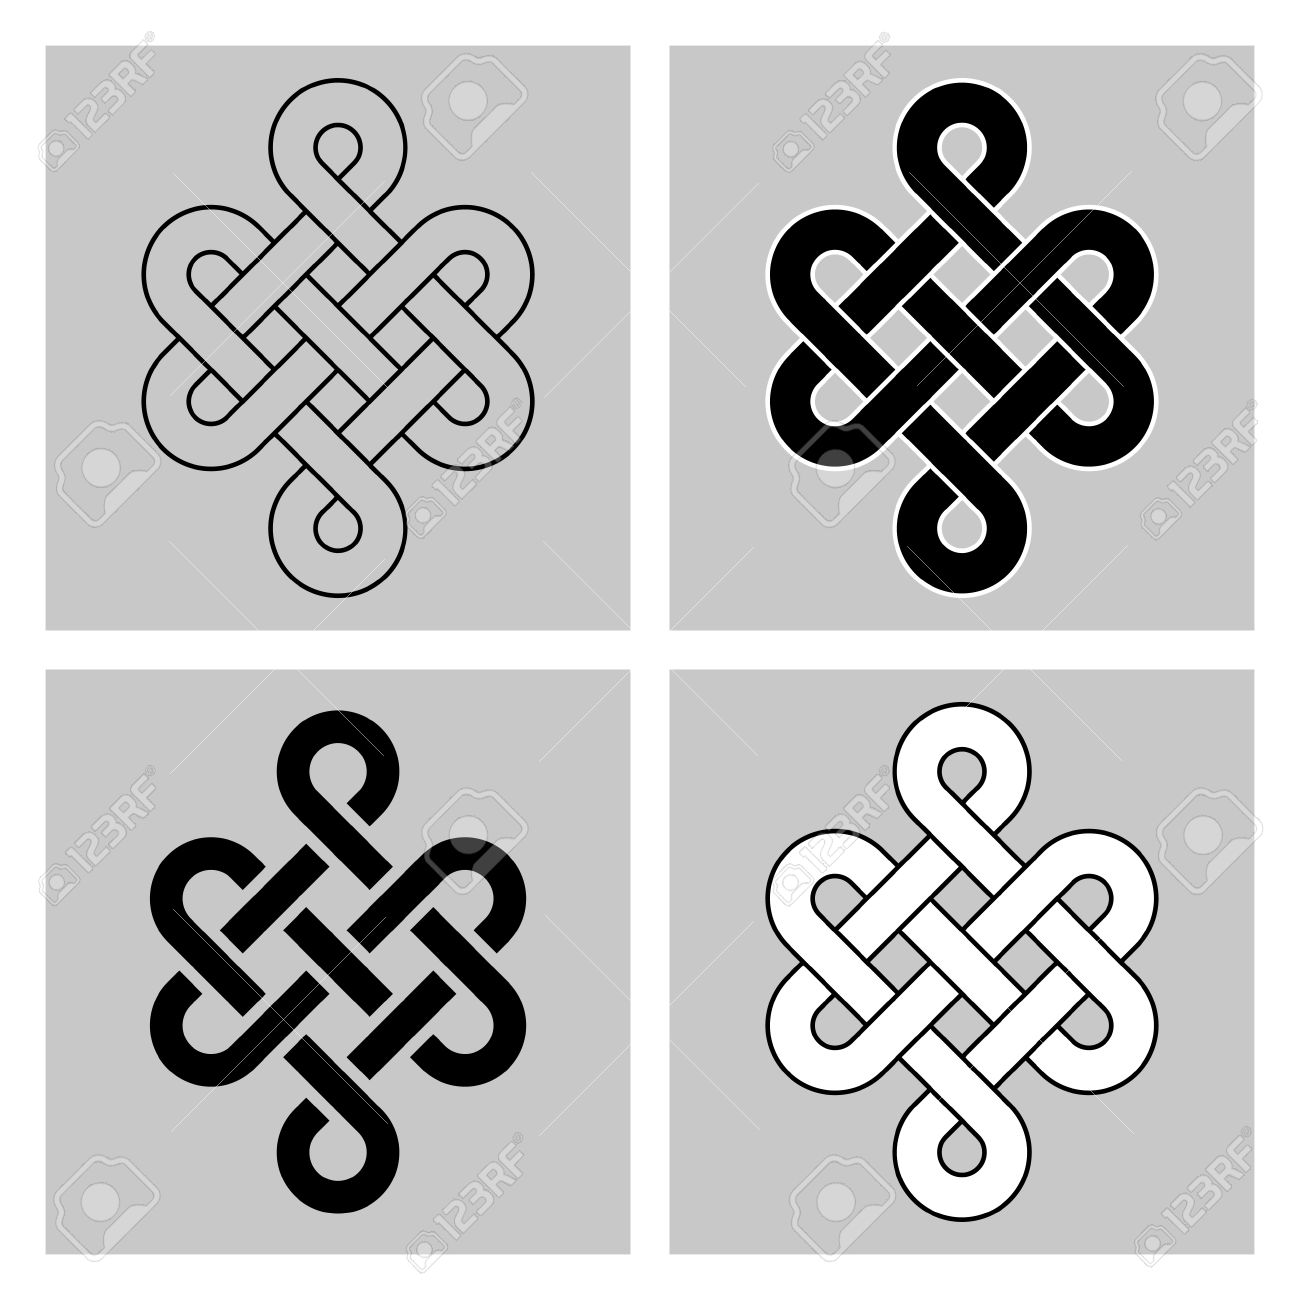 The endless knot sacred symbol of the rebirth in the sacred symbol of the rebirth in the concatenations buddhism separated background biocorpaavc Gallery